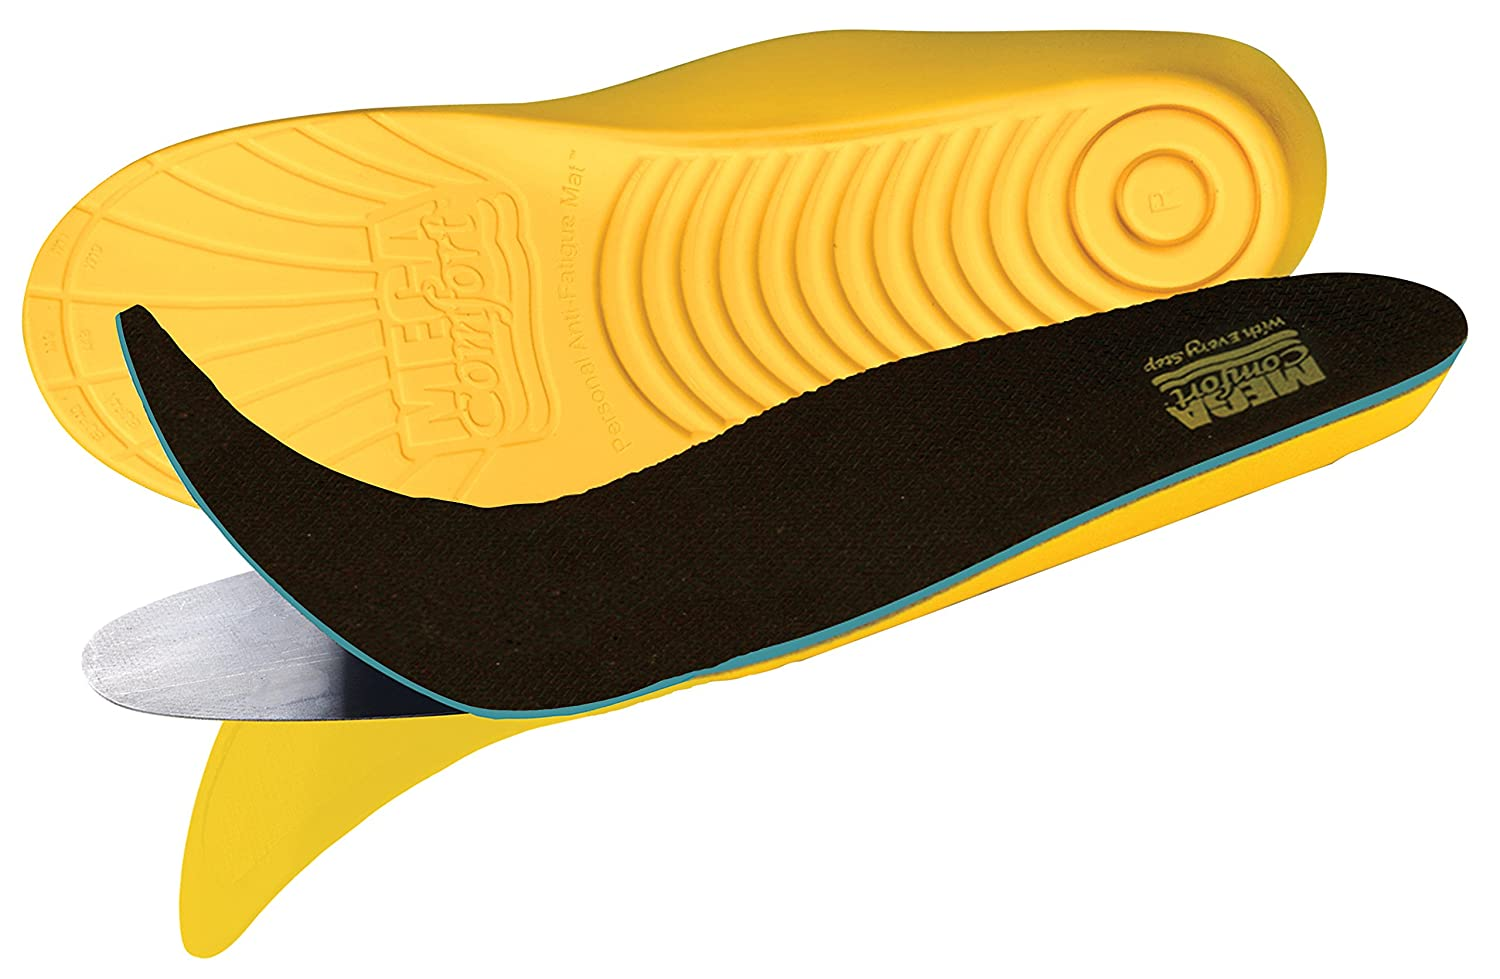 MEGAComfort PAM Puncture Resistant Insoles; Dual Layer 100% Memory Foam and Flexible Steel Plate for Enhanced Safety, Comfort and Protection, Men's Size 8-9, Women's Size 10-11, Yellow/Black